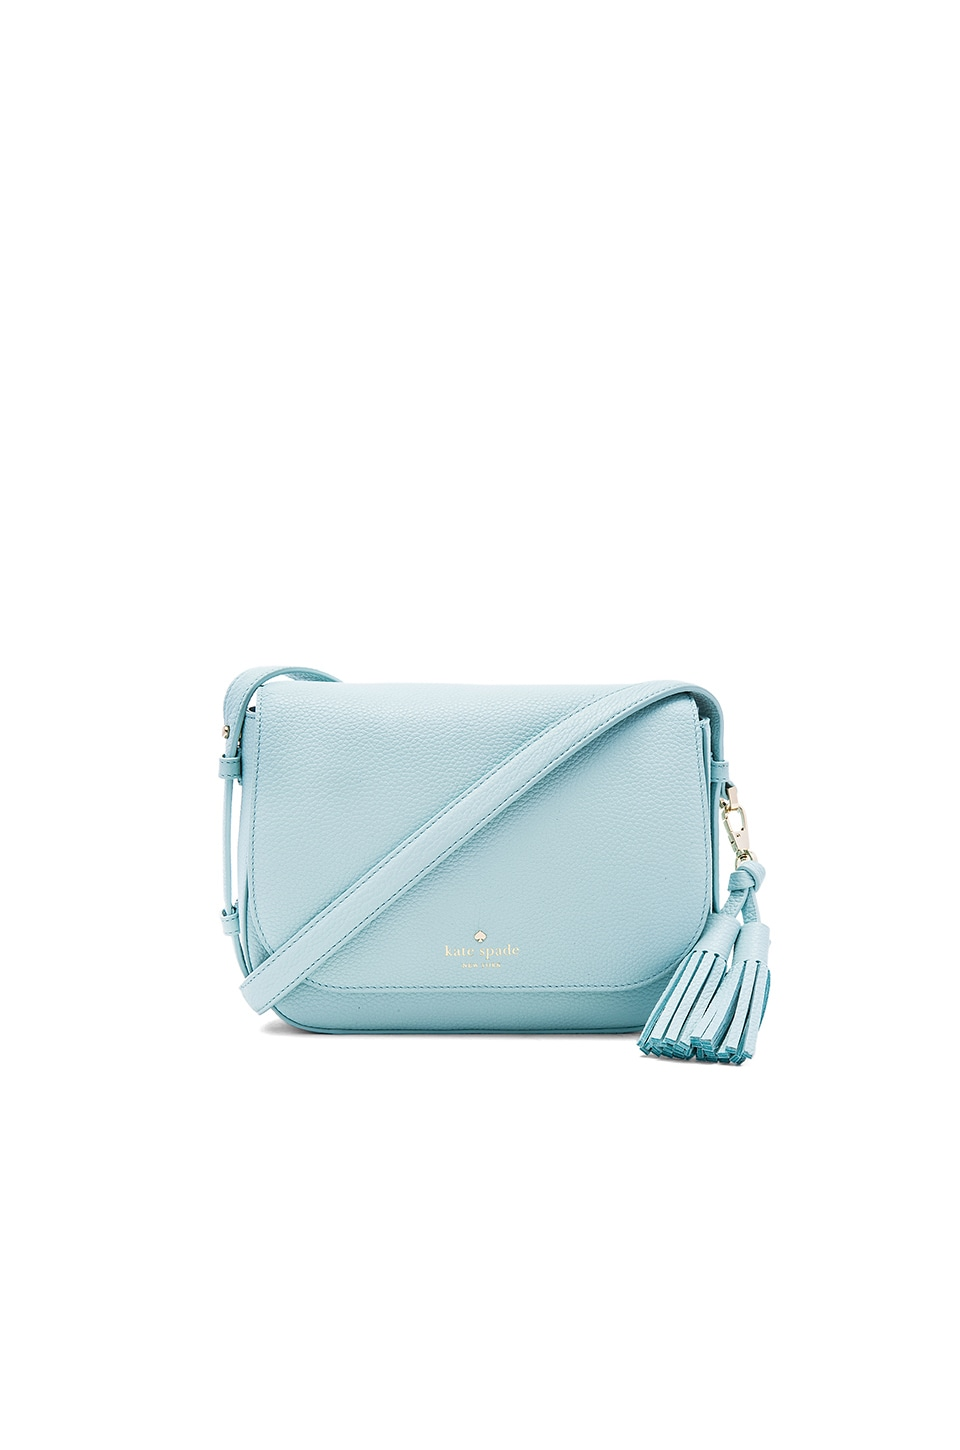 kate spade new york Penelope Crossbody in Grace Blue